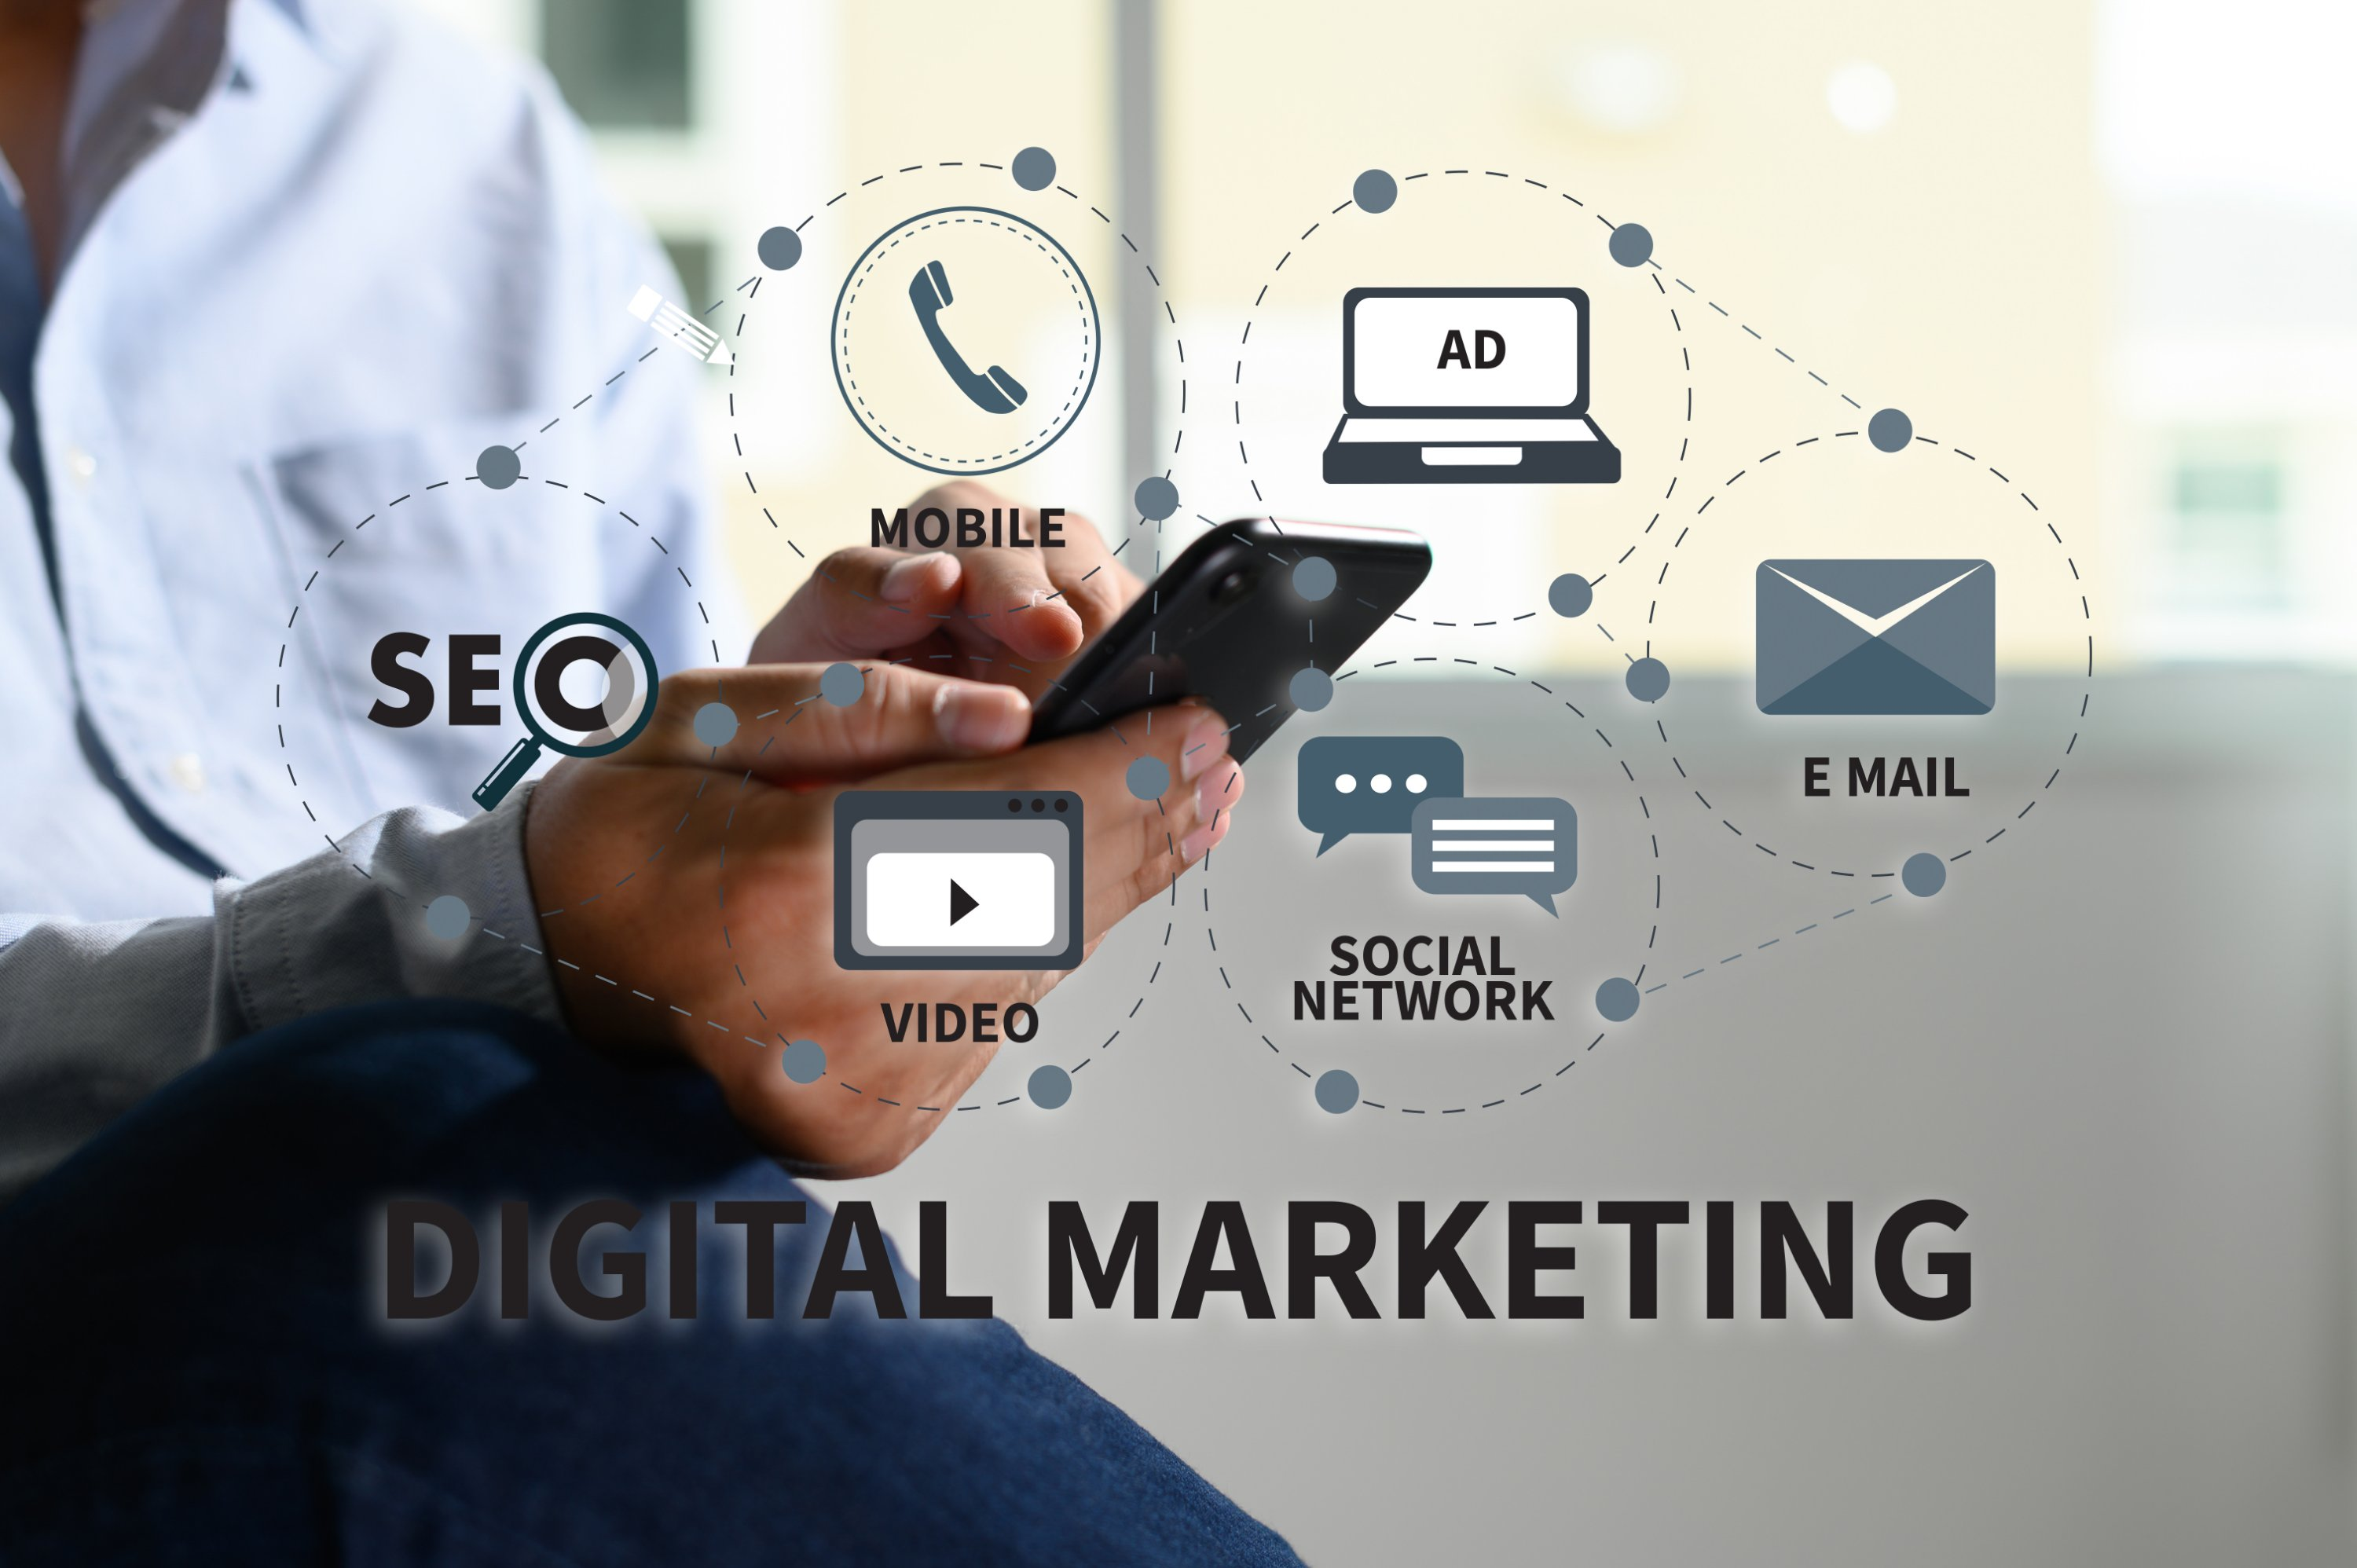 Digital marketing movil ID-click